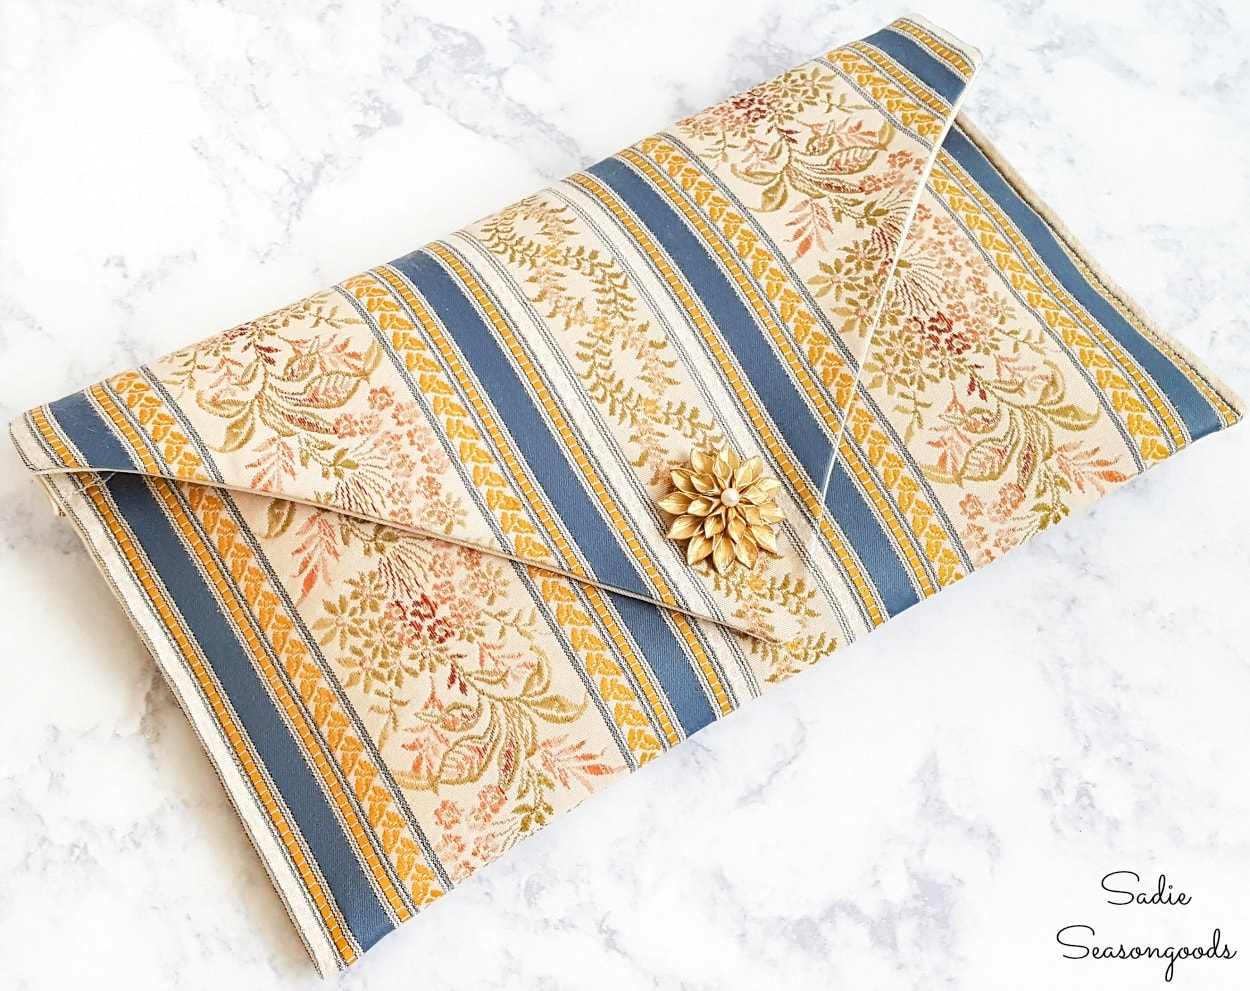 Decorating a clutch with a brooch or pin